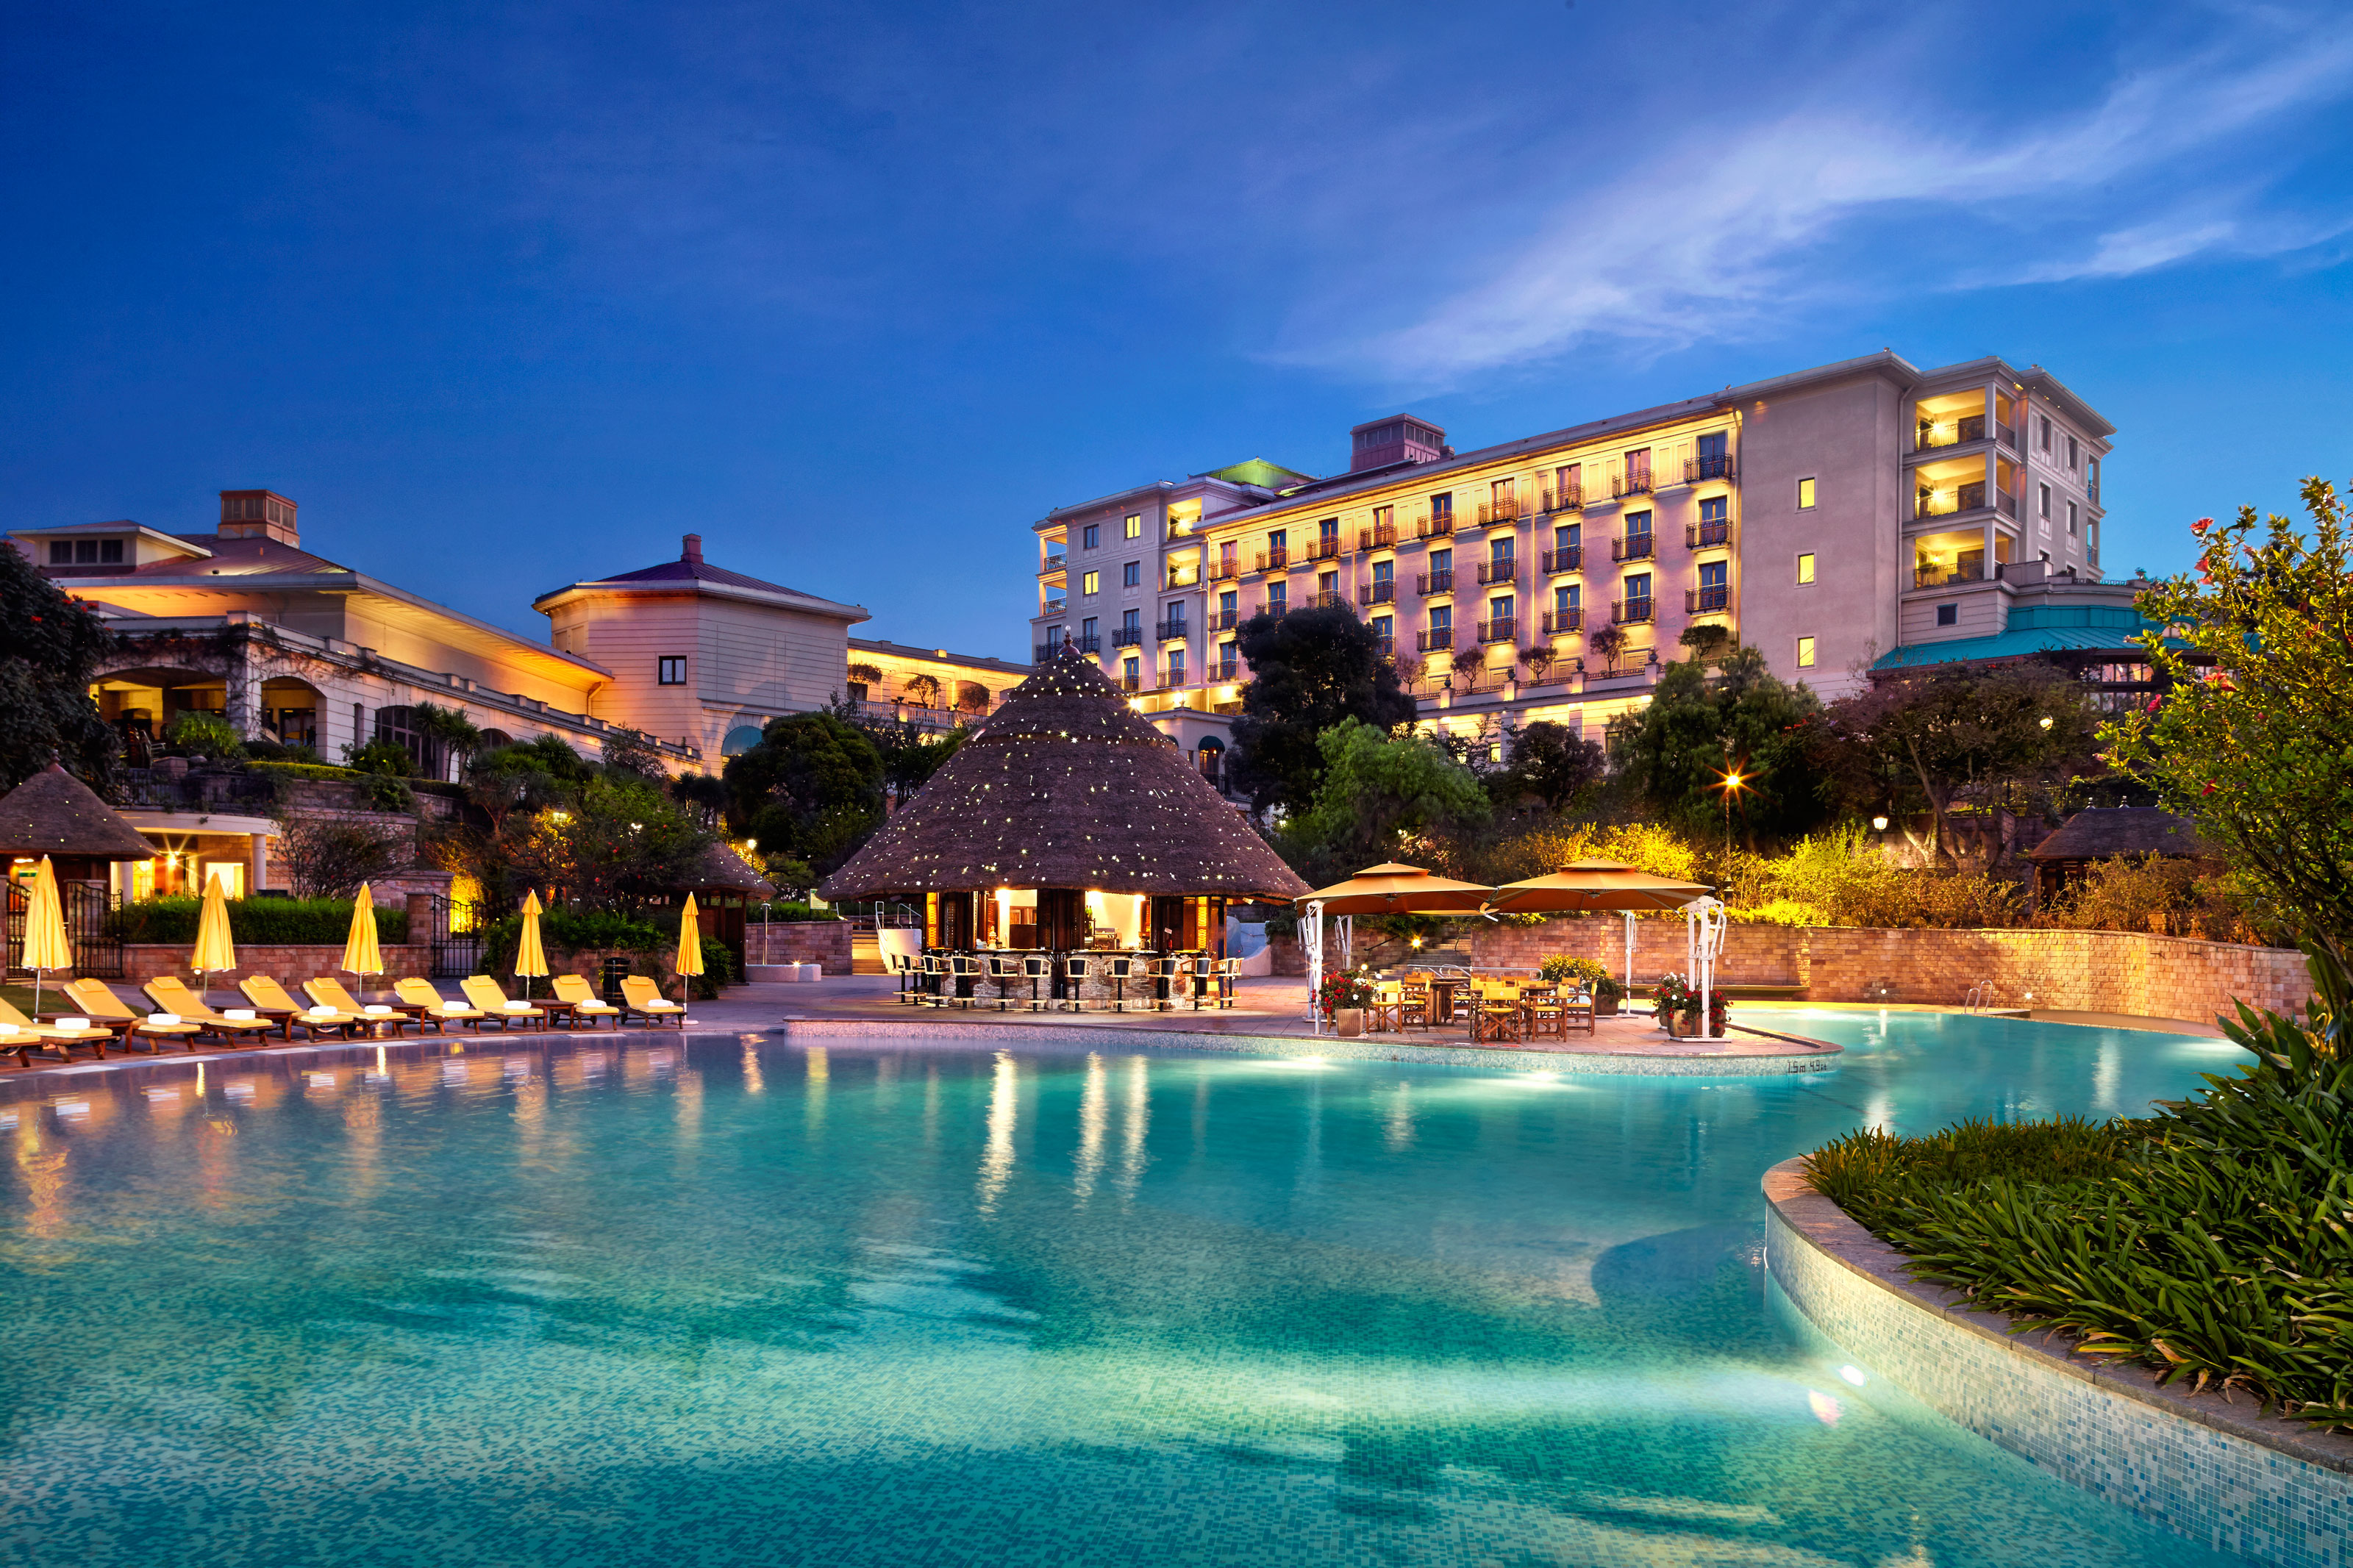 A picture of the Sheraton Hotel, luxury travel in Ethiopia